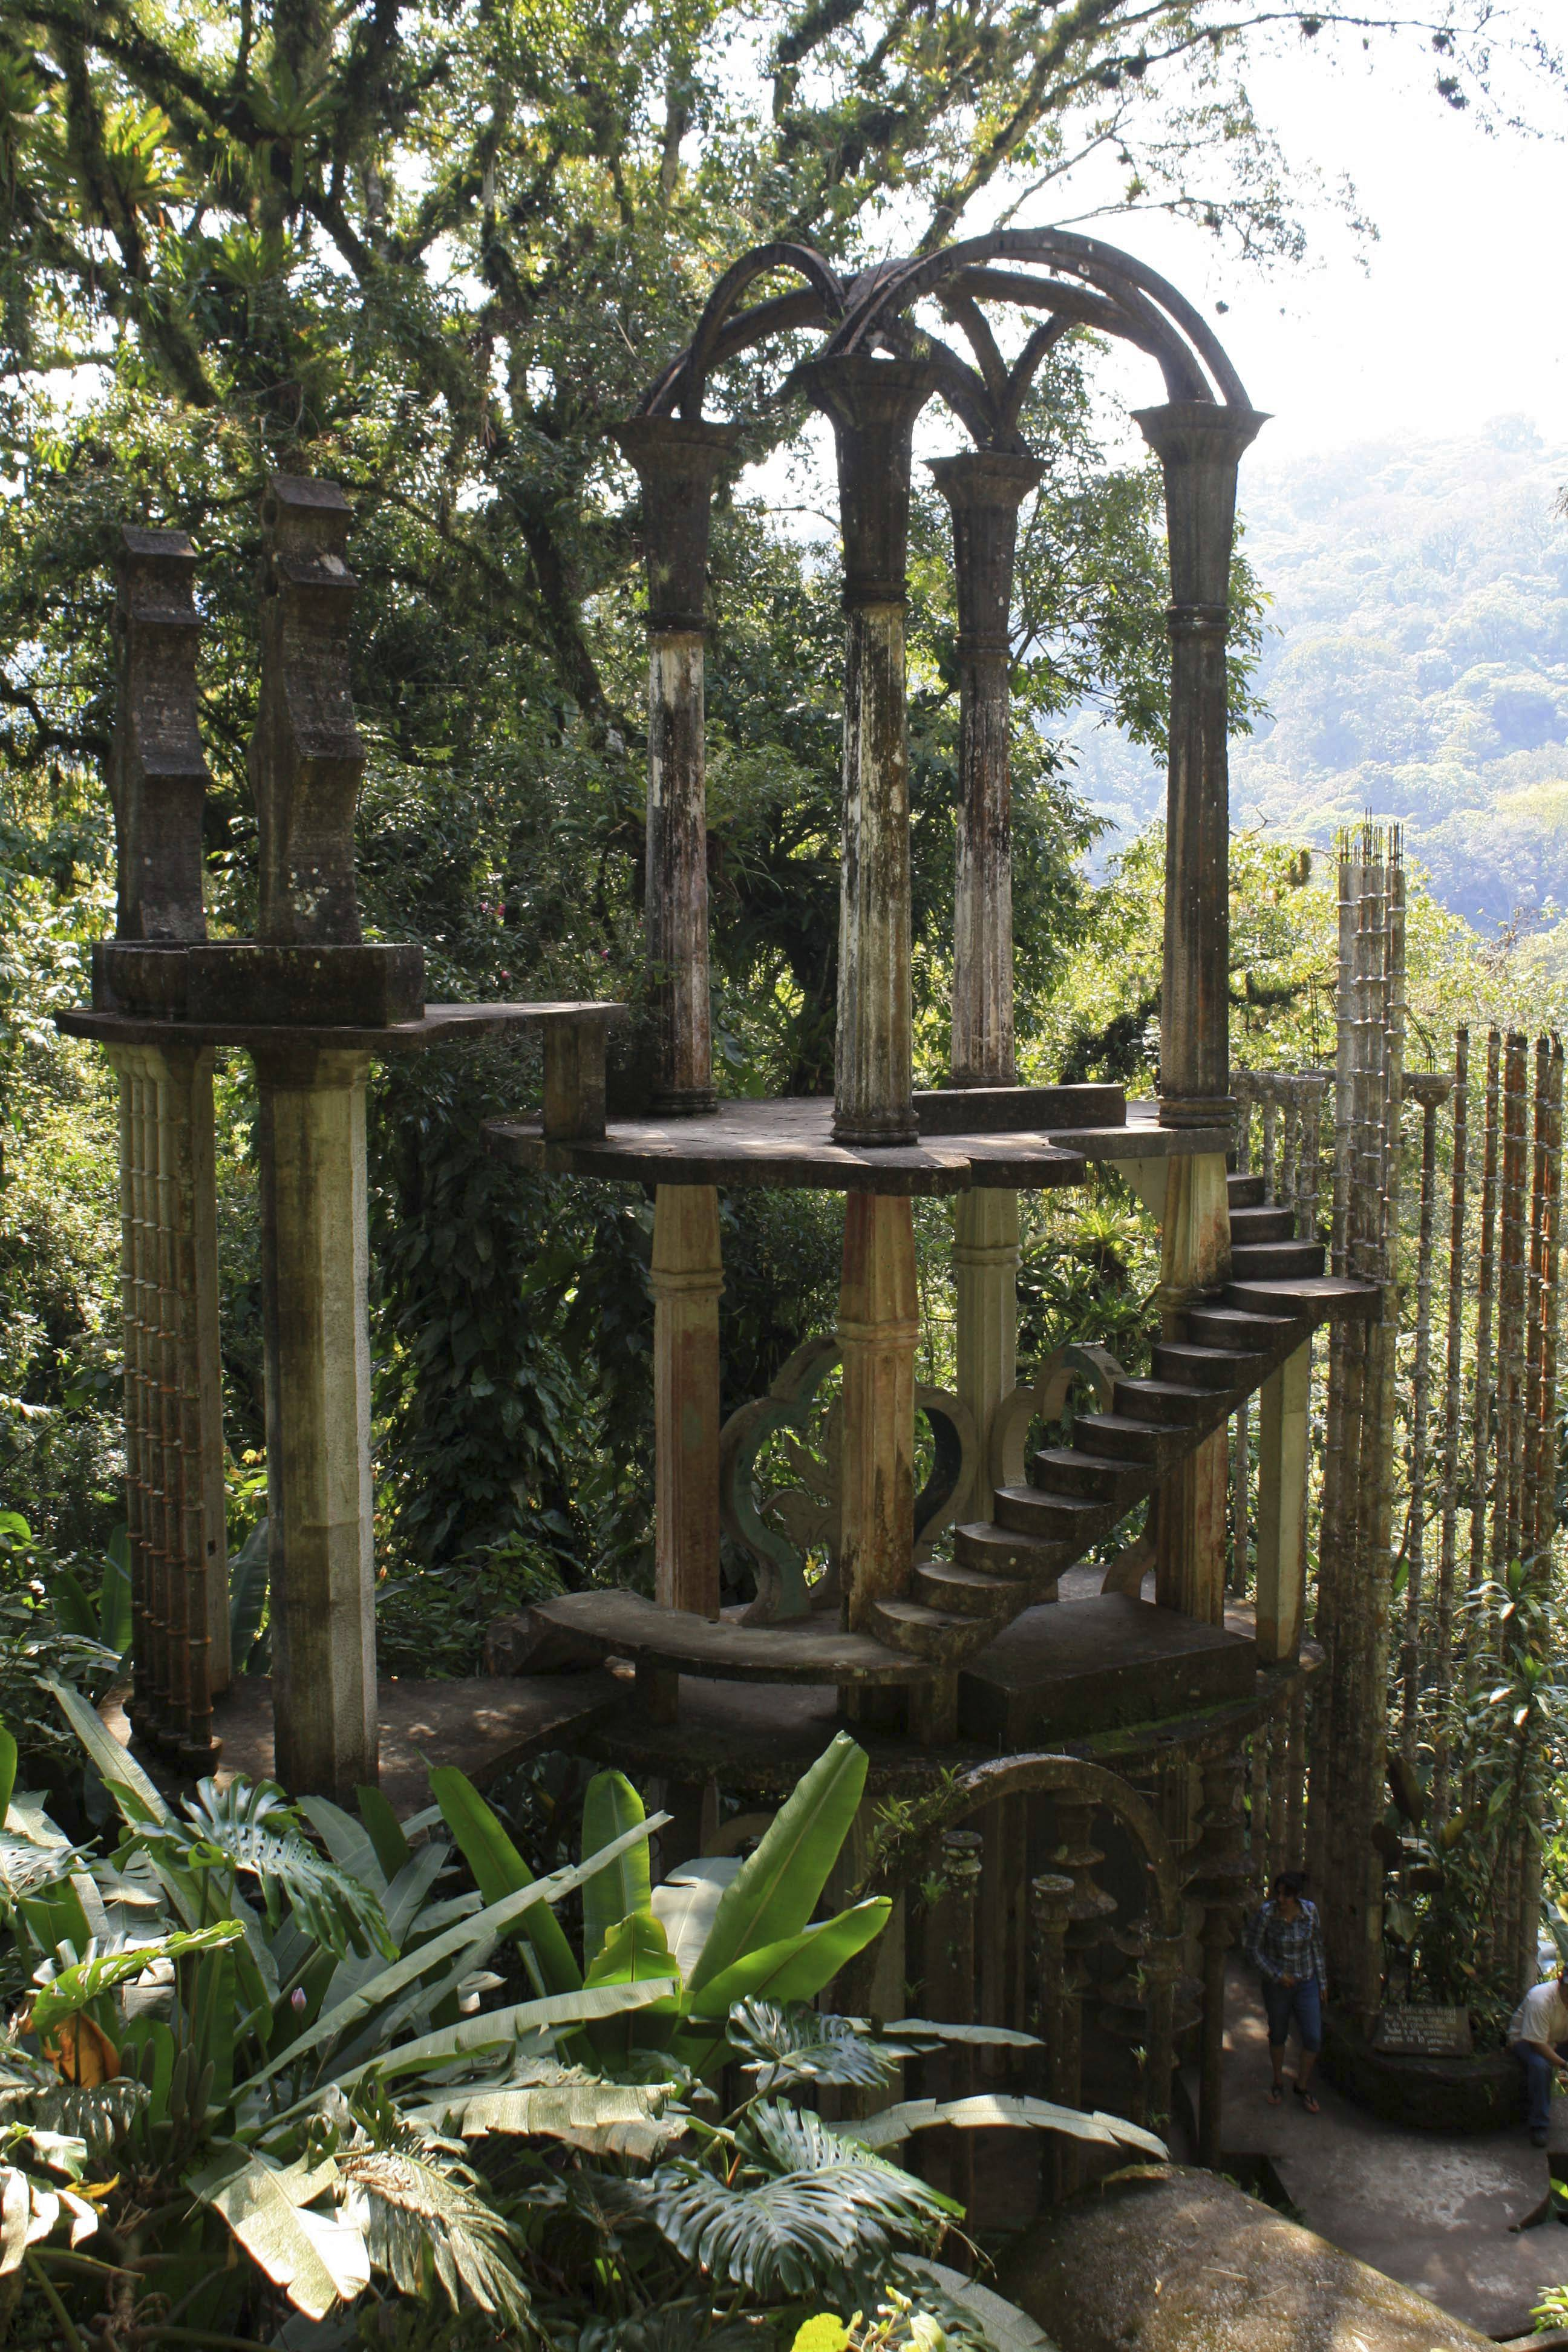 The late Edward James, a British multimillionaire and arts patron, created Las Pozas. He liked to think that future archaeologists would discover his lost city and wonder what kind of civilization had built it, said Carlos Barbosa, a park guide.